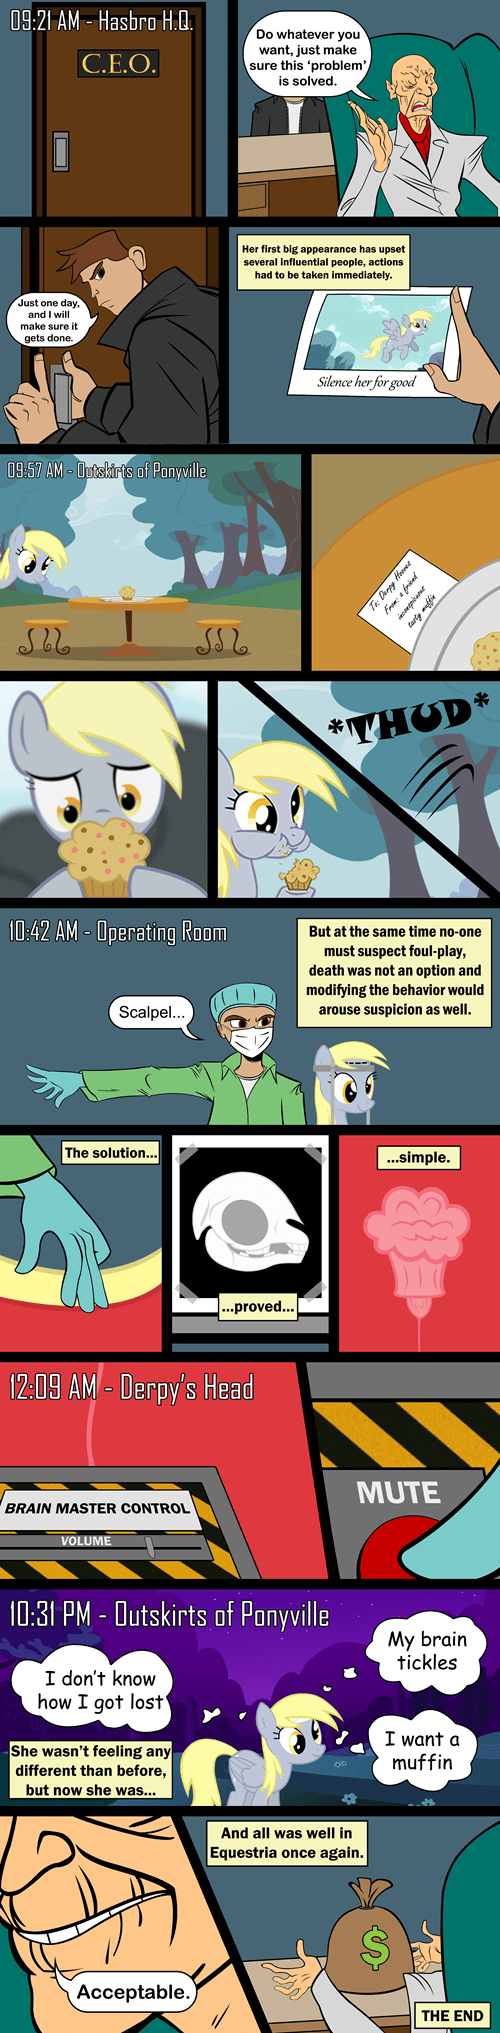 Why Derpy doesn't speak any more.